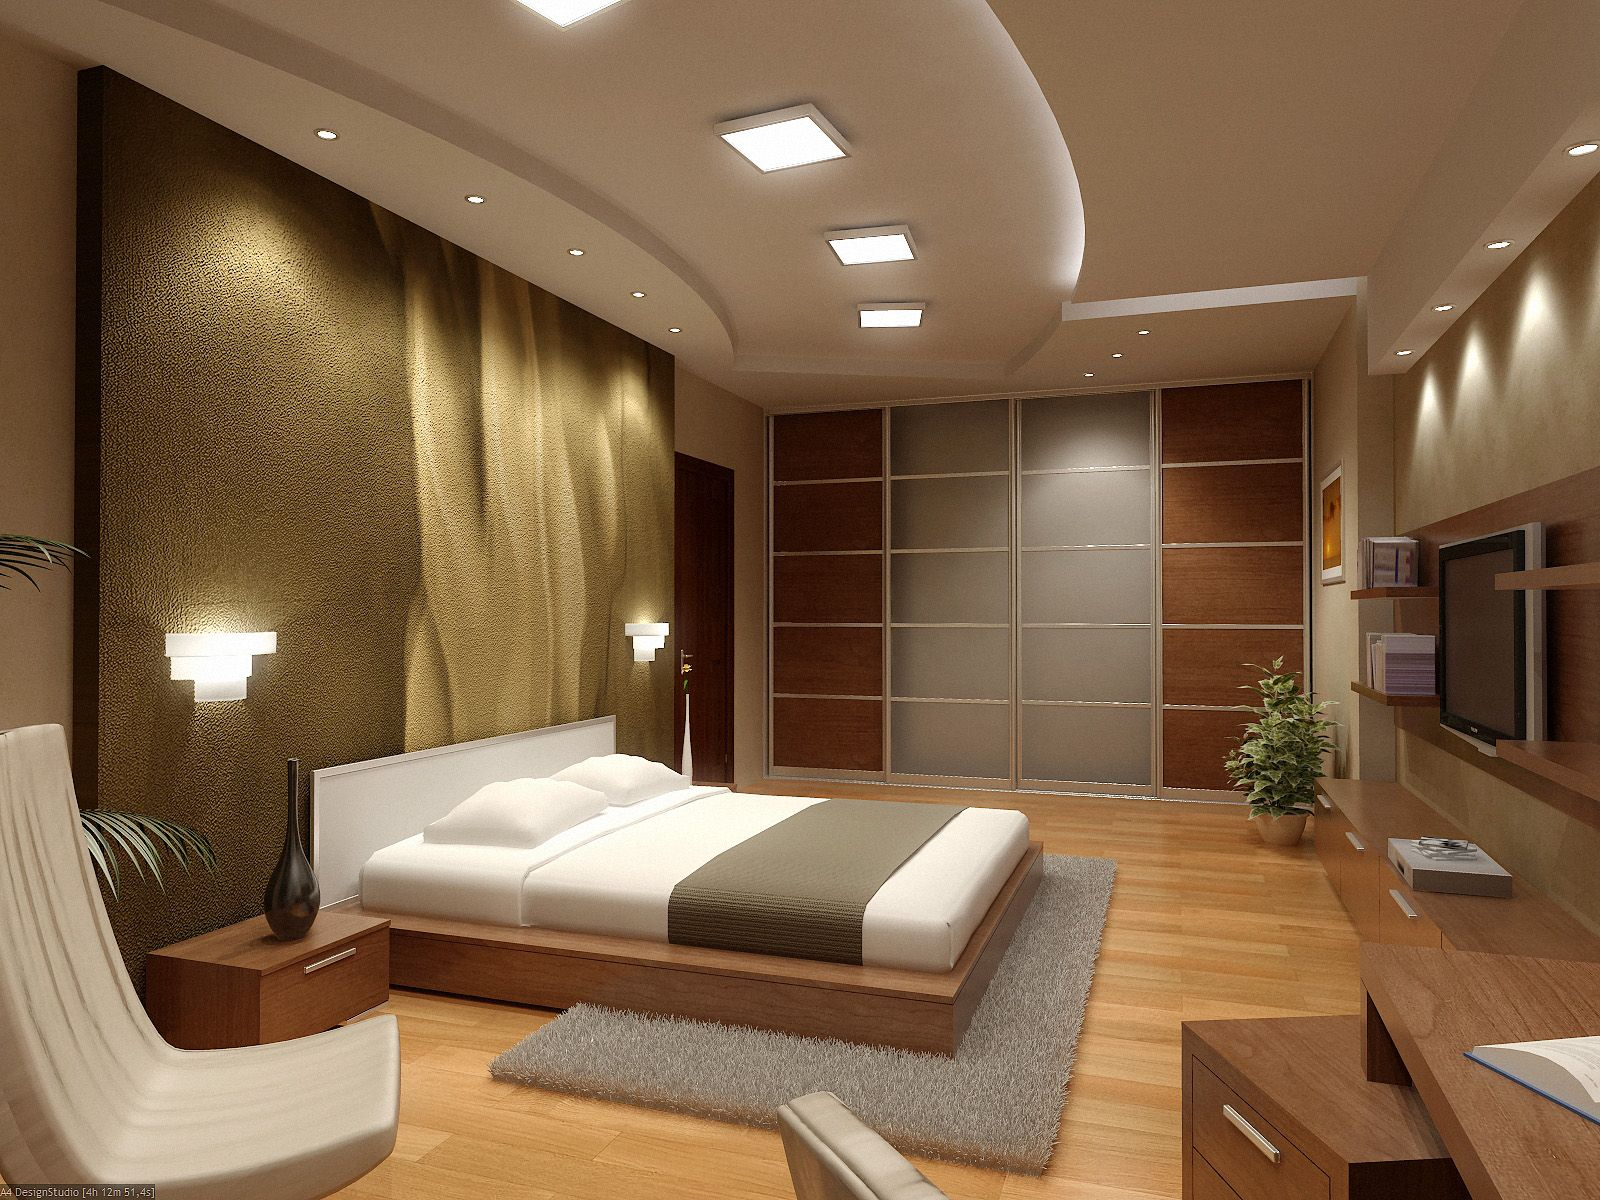 New home designs latest modern homes luxury interior for Modern bedroom interior